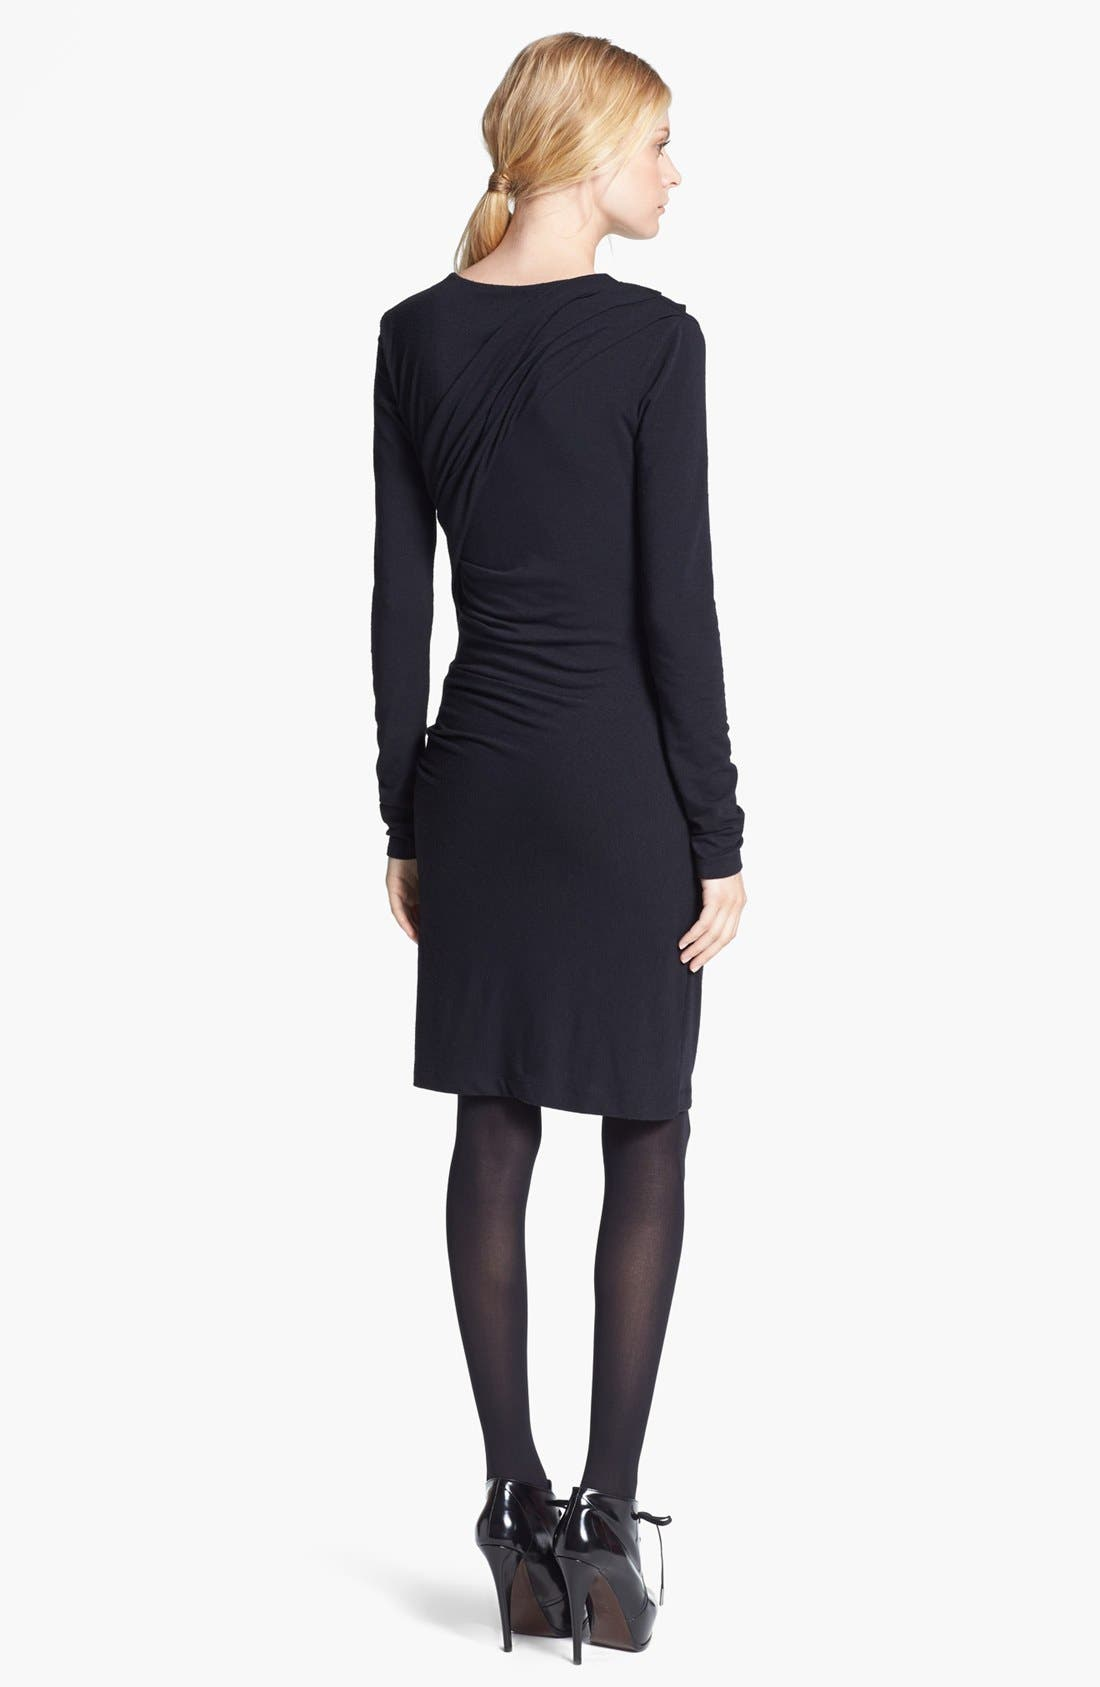 T by Alexander Wang Gathered Jersey Dress,                             Alternate thumbnail 3, color,                             001